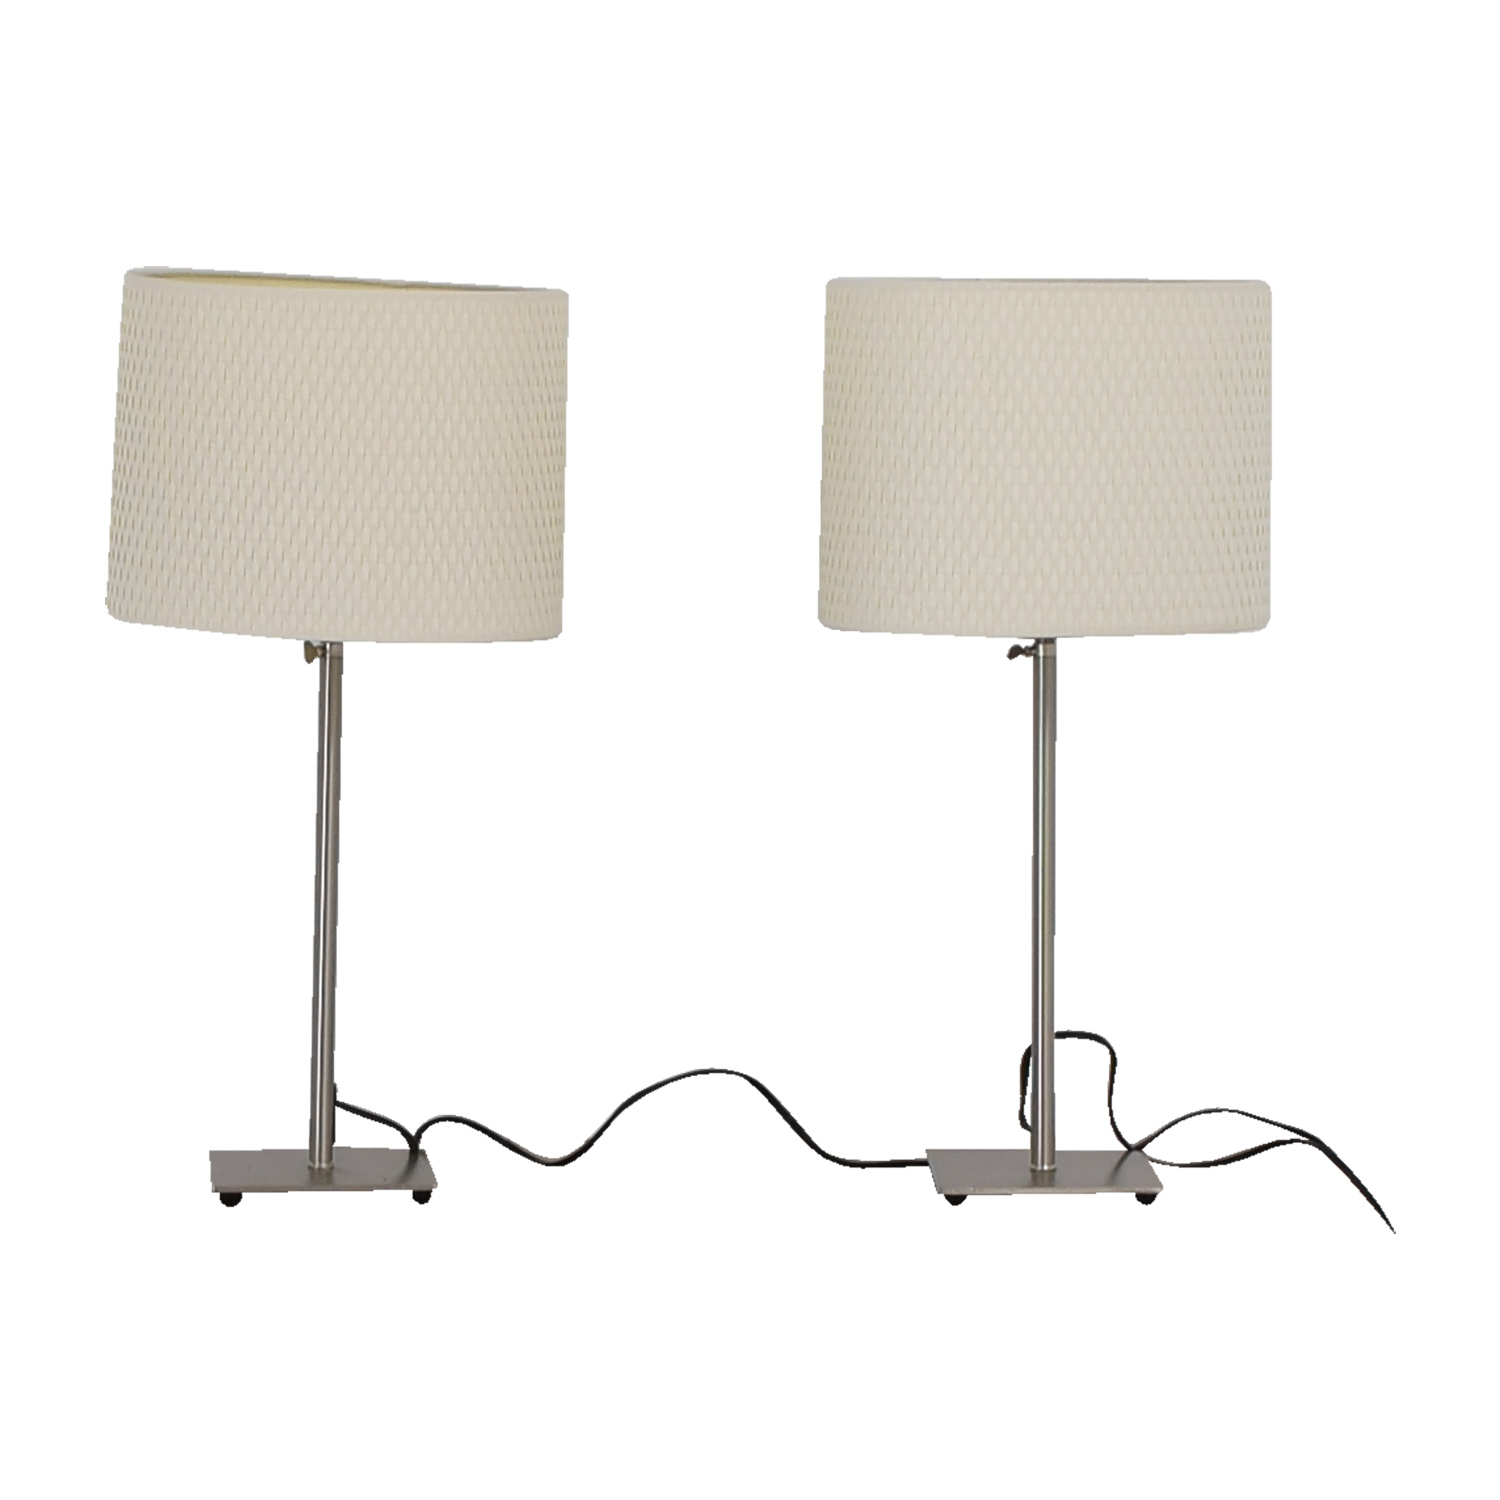 IKEA IKEA Chrome Adjustable Table Lamps Nyc ...